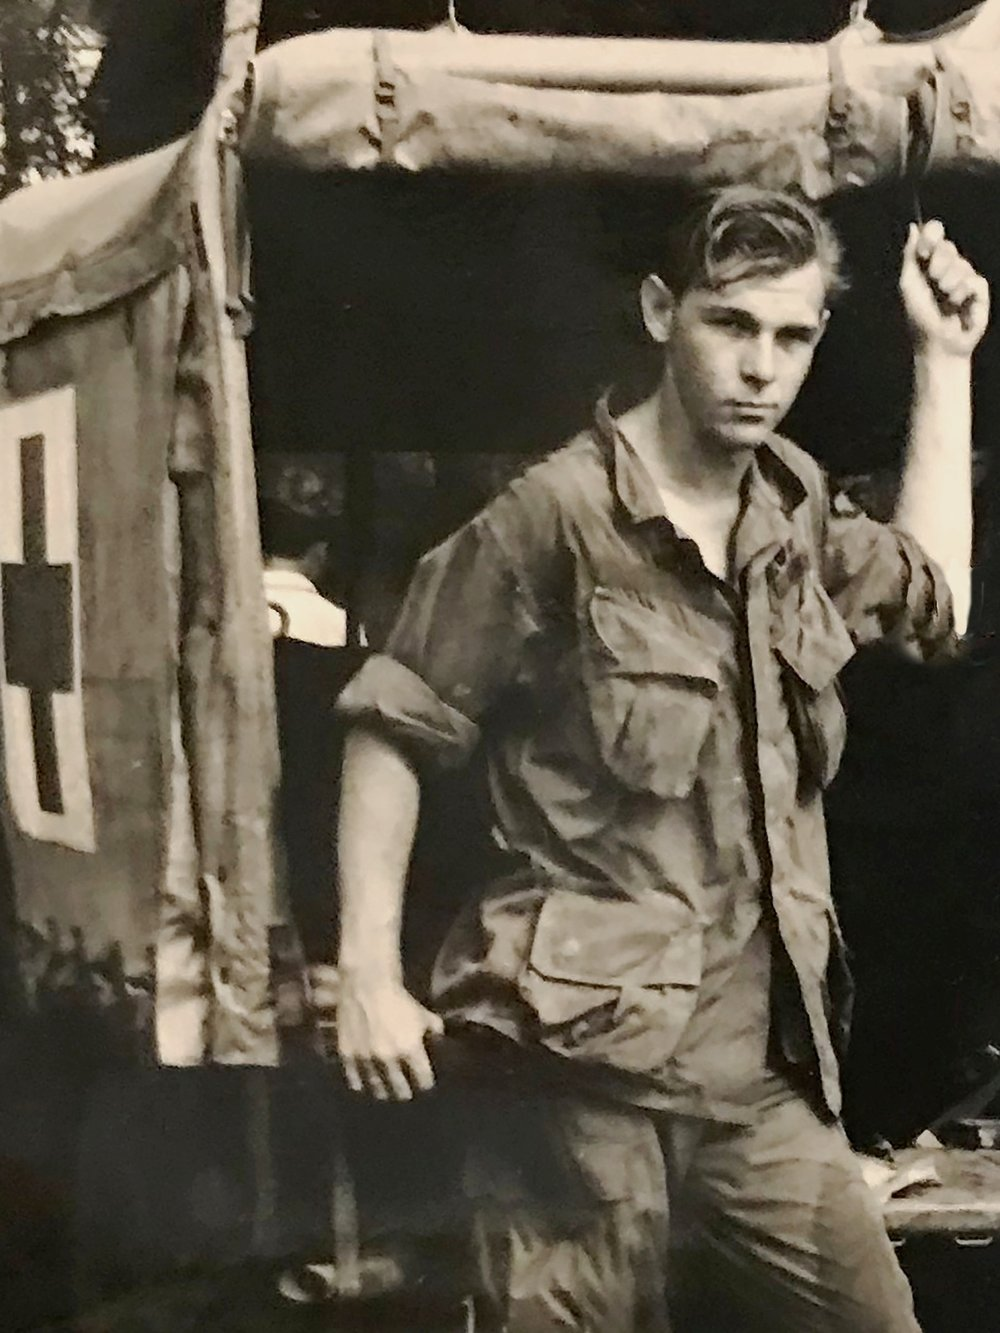 Jack Stimax  - (May 26, 1946 - February 7, 2018)Combat Medic SP4- 1st Cavalry/first of the ninthActive Duty: Dec 1965-Dec 1967Medals and Awards: Vietnam Campaign Medal, Bronze Service Star, Air Medal, Combat Medical Badge